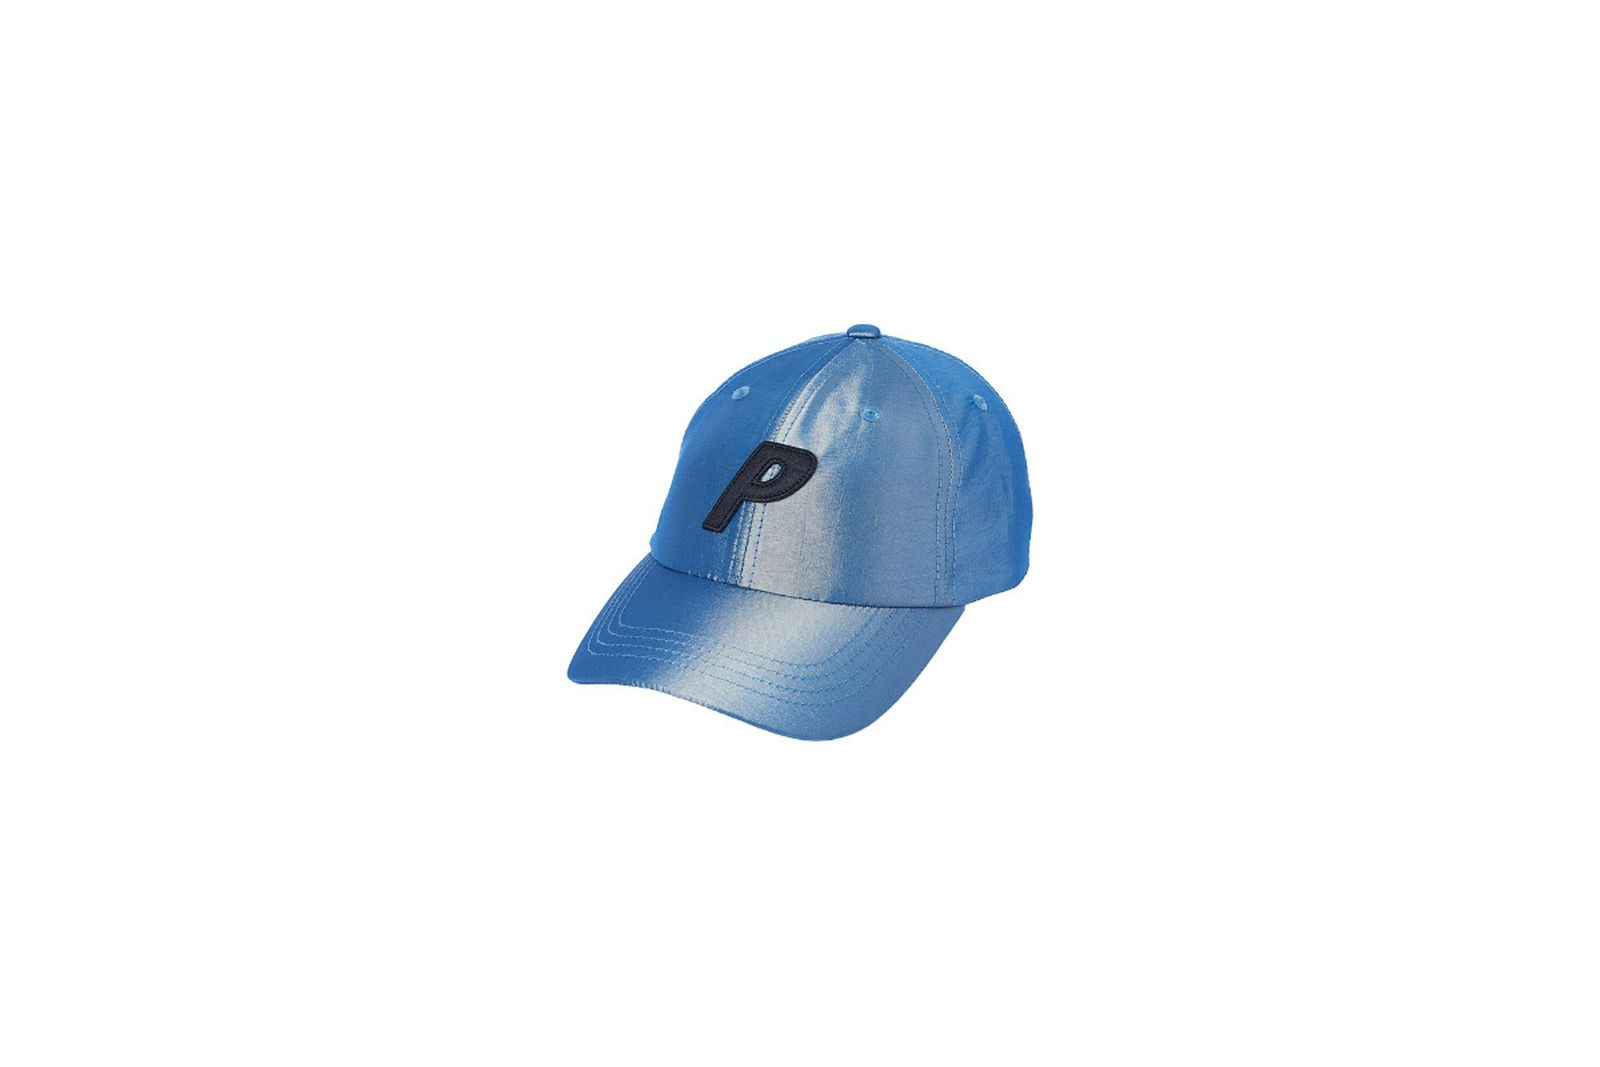 Palace 2019 Autumn cap p cruise shell 6 panel blue1427